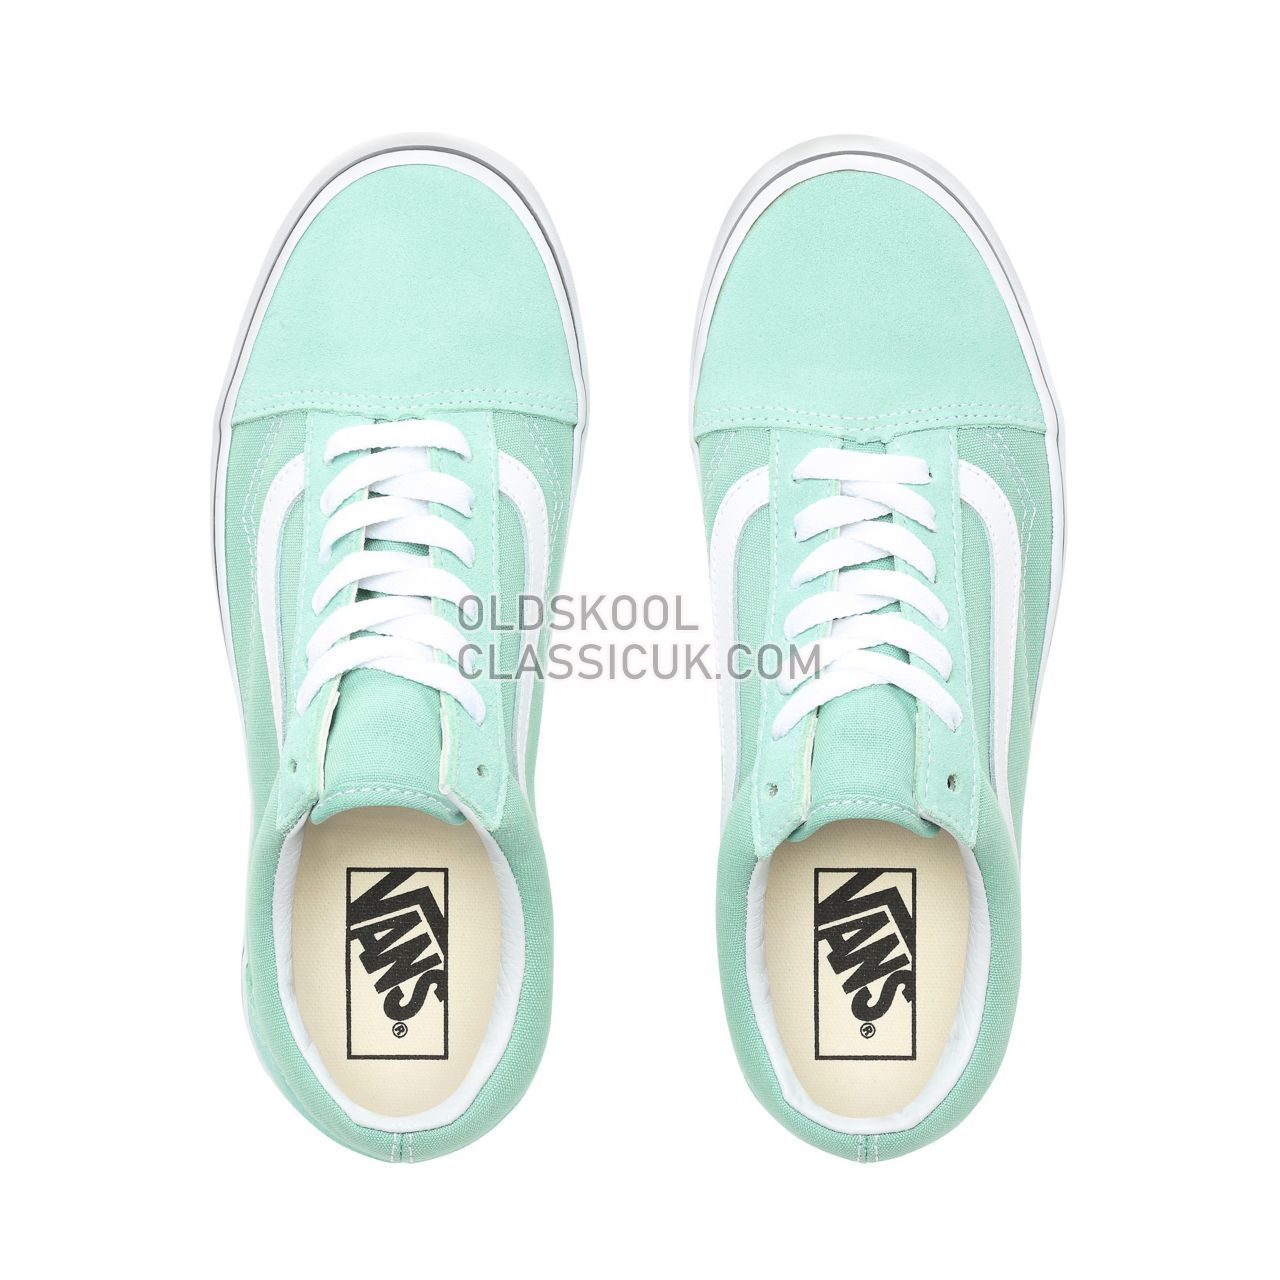 Vans Old Skool Sneakers Womens Neptune Green/True White VN0A38G1VMX Shoes